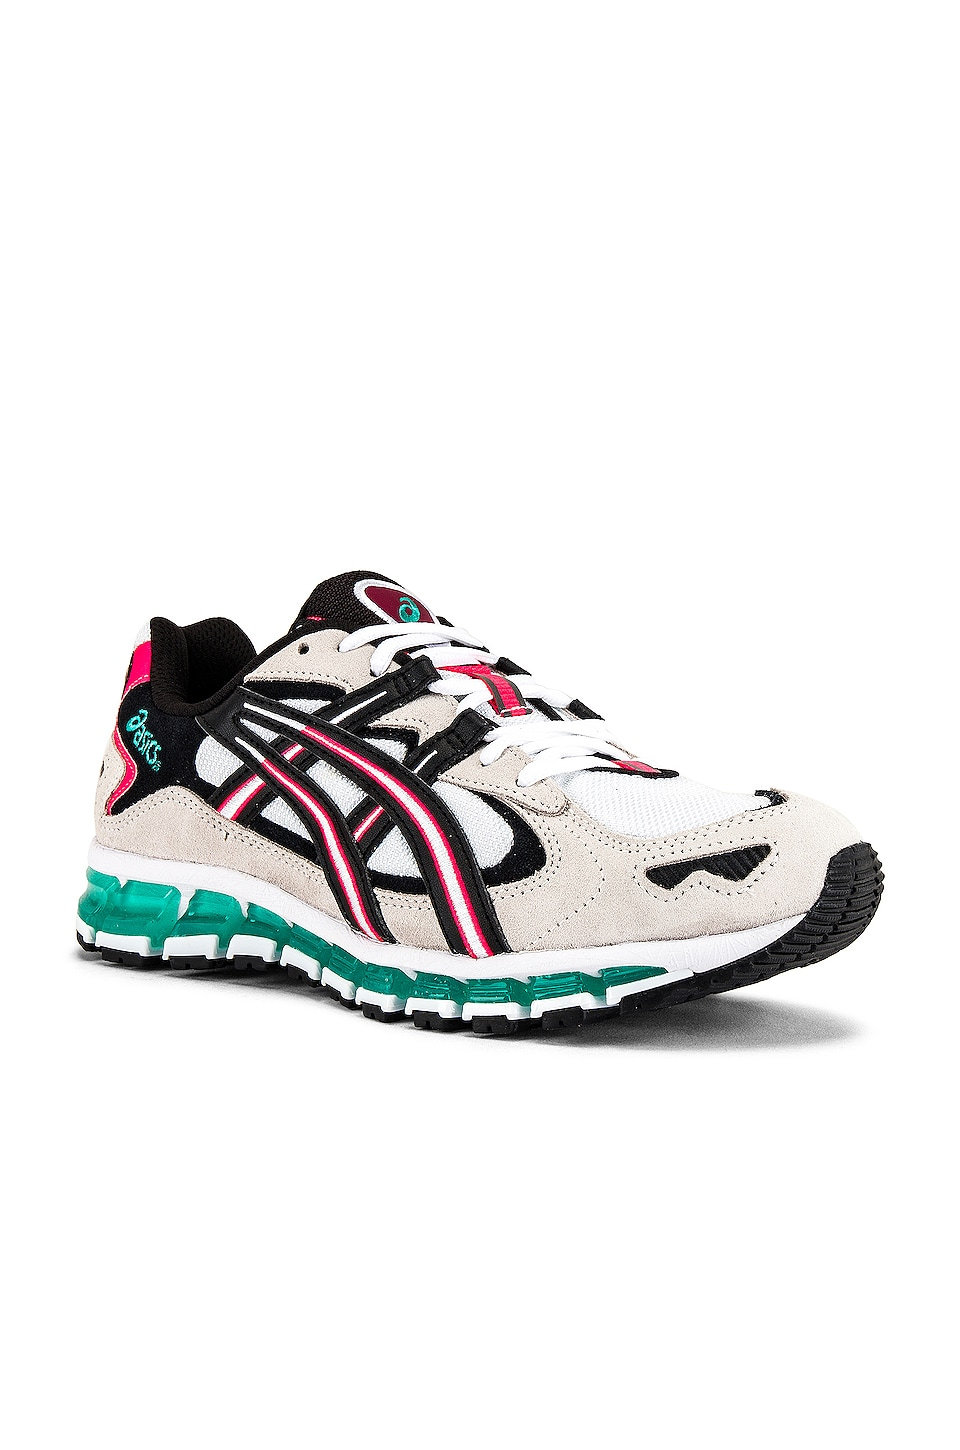 Asics Platinum Kayano 5 360 en White & Cream